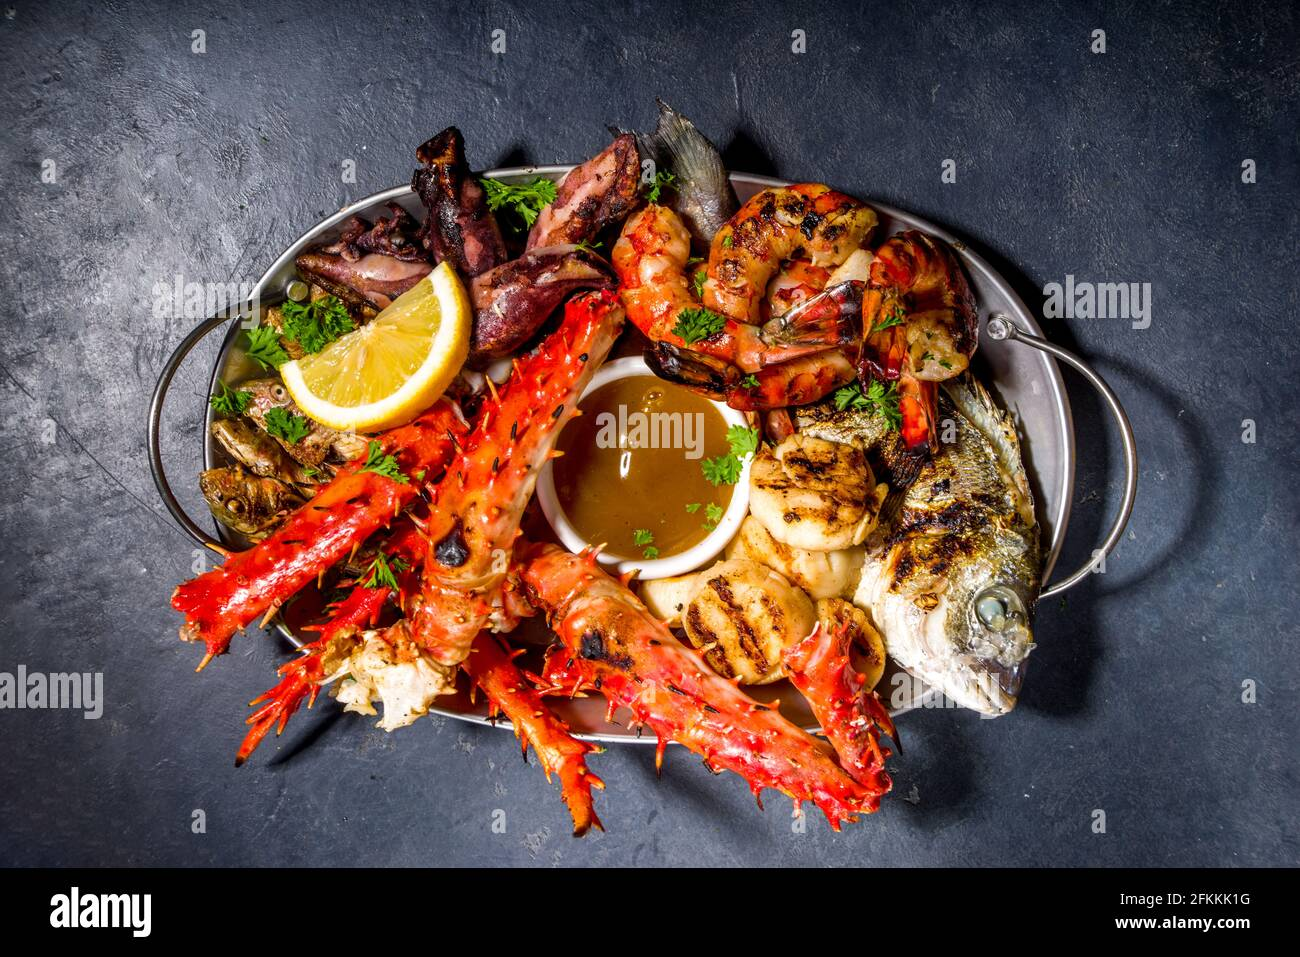 Assortment various barbecue Mediterranean grill food - fish, octopus, shrimp, crab, seafood, mussels, summer diet bbq party fest, with kebab, sauces, Stock Photo